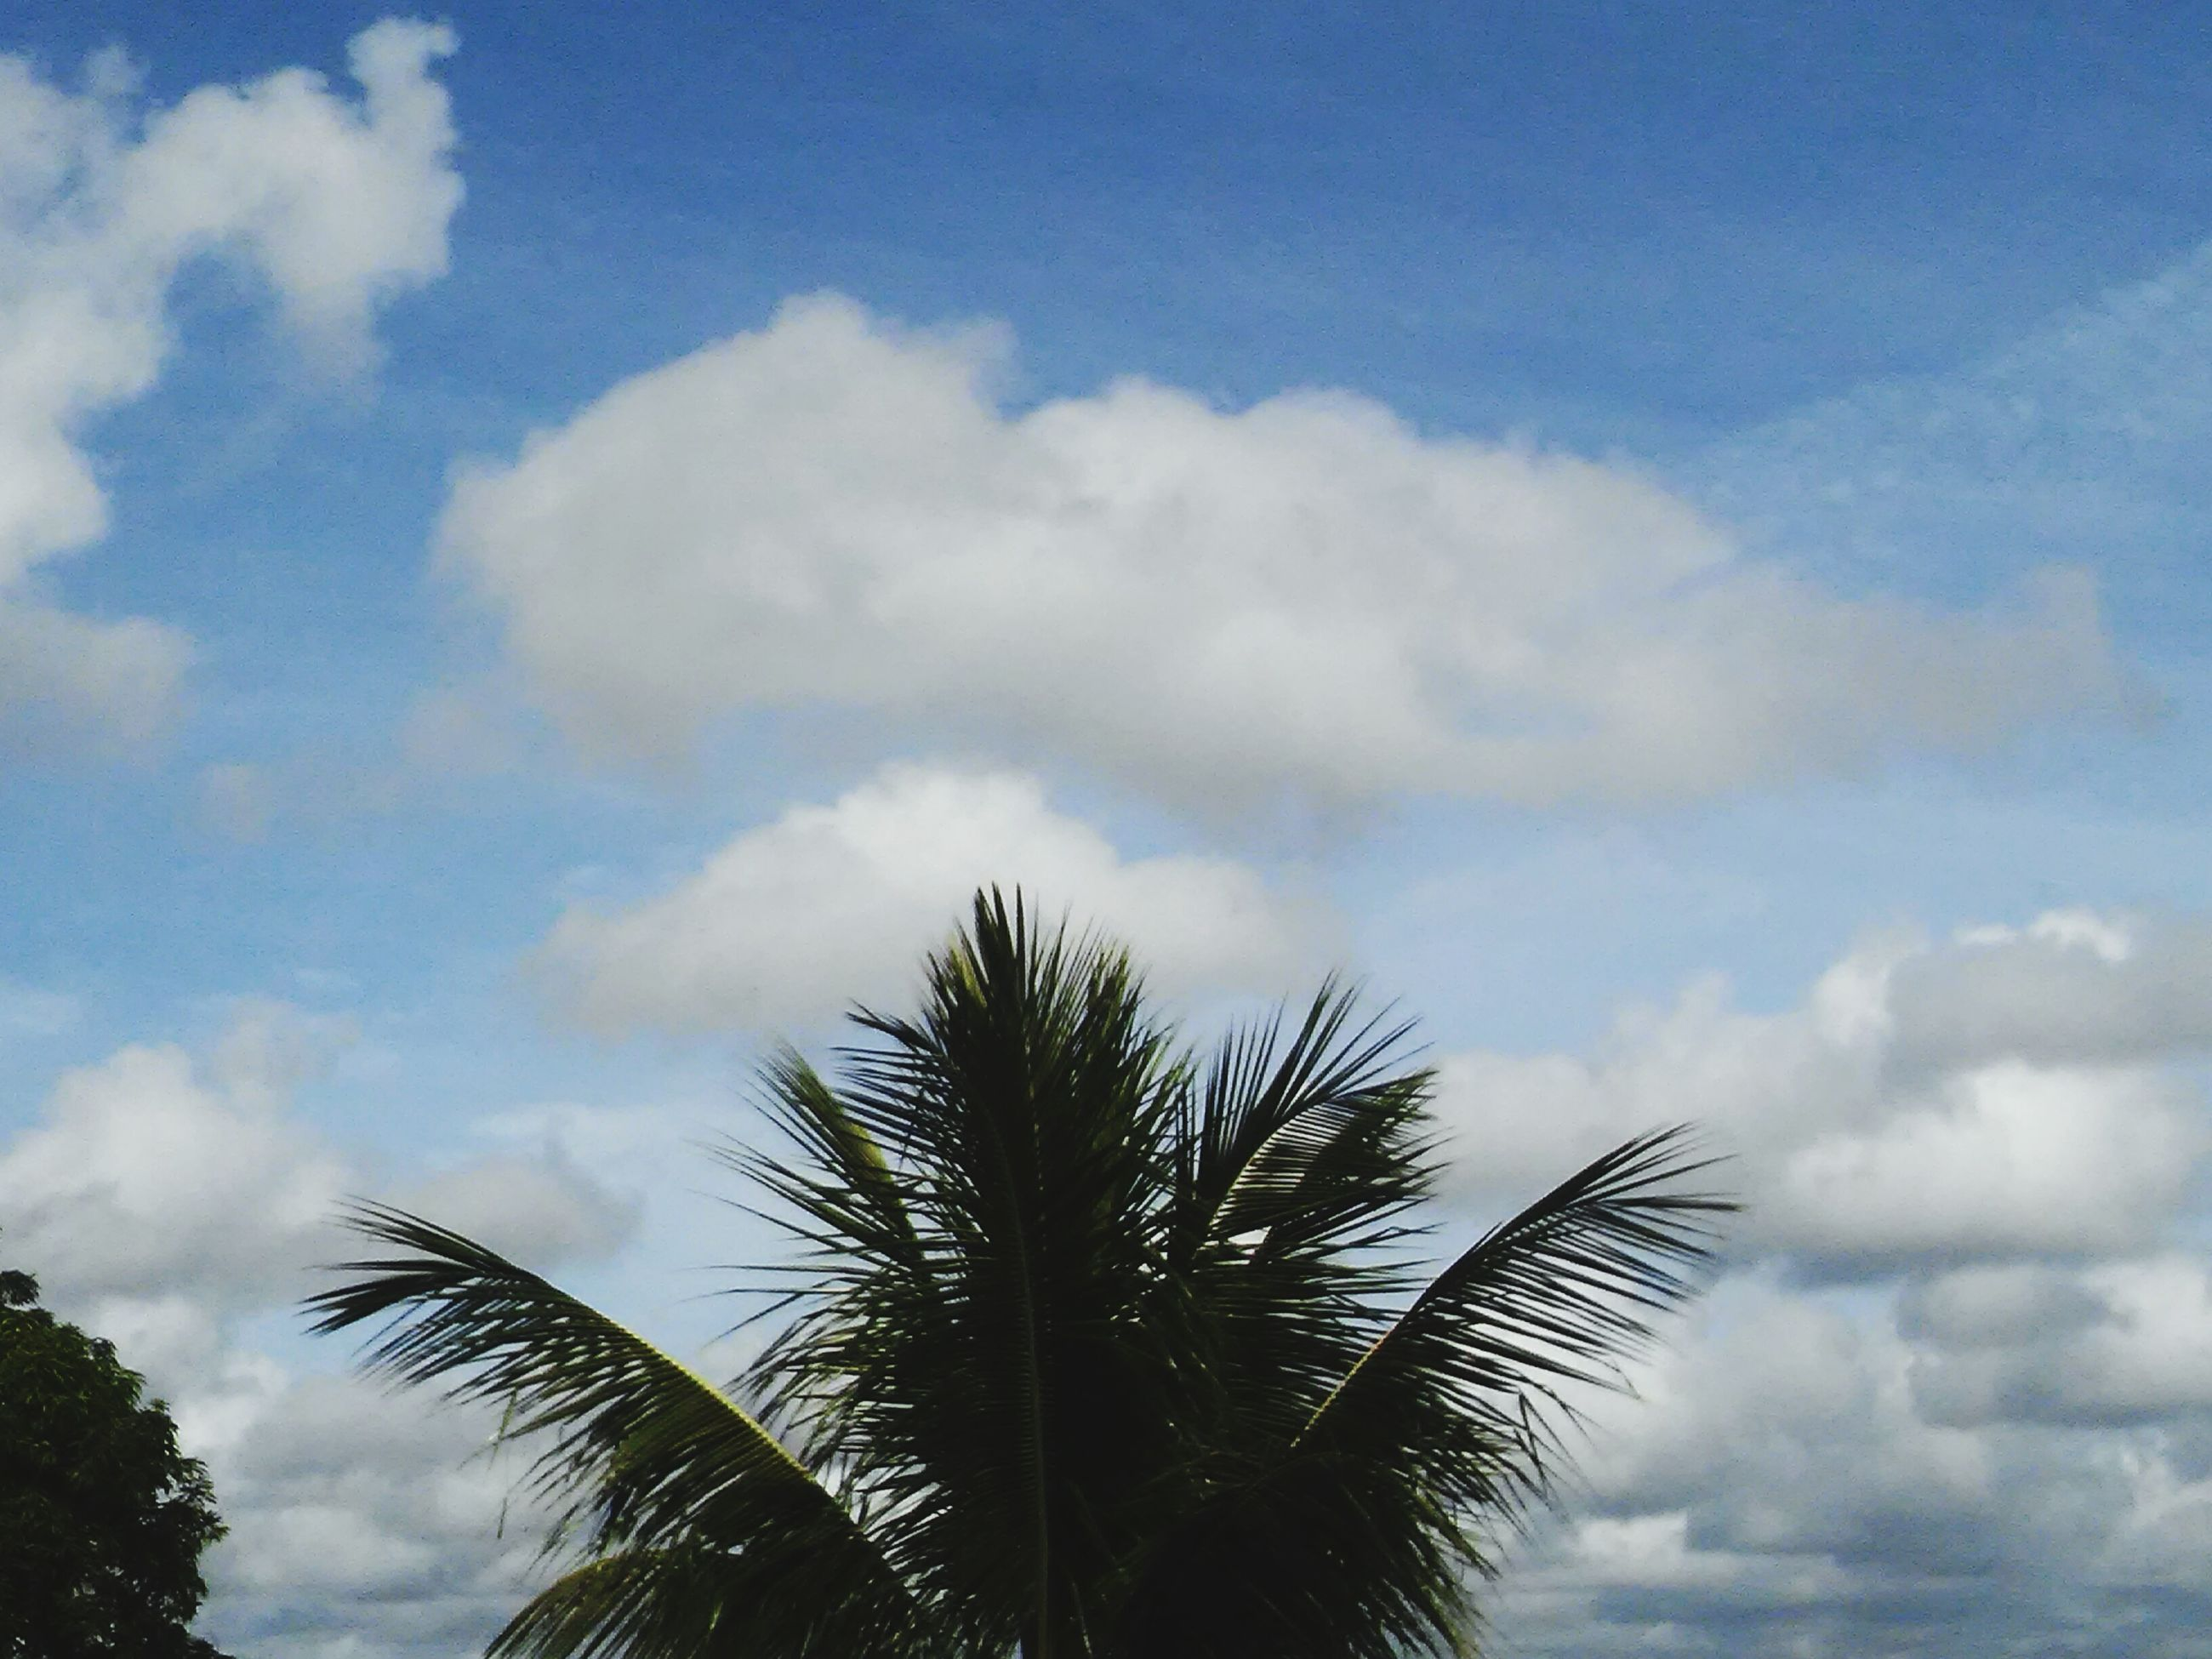 low angle view, sky, cloud - sky, tree, palm tree, tranquility, nature, growth, beauty in nature, cloud, cloudy, blue, scenics, tranquil scene, silhouette, day, outdoors, no people, high section, leaf